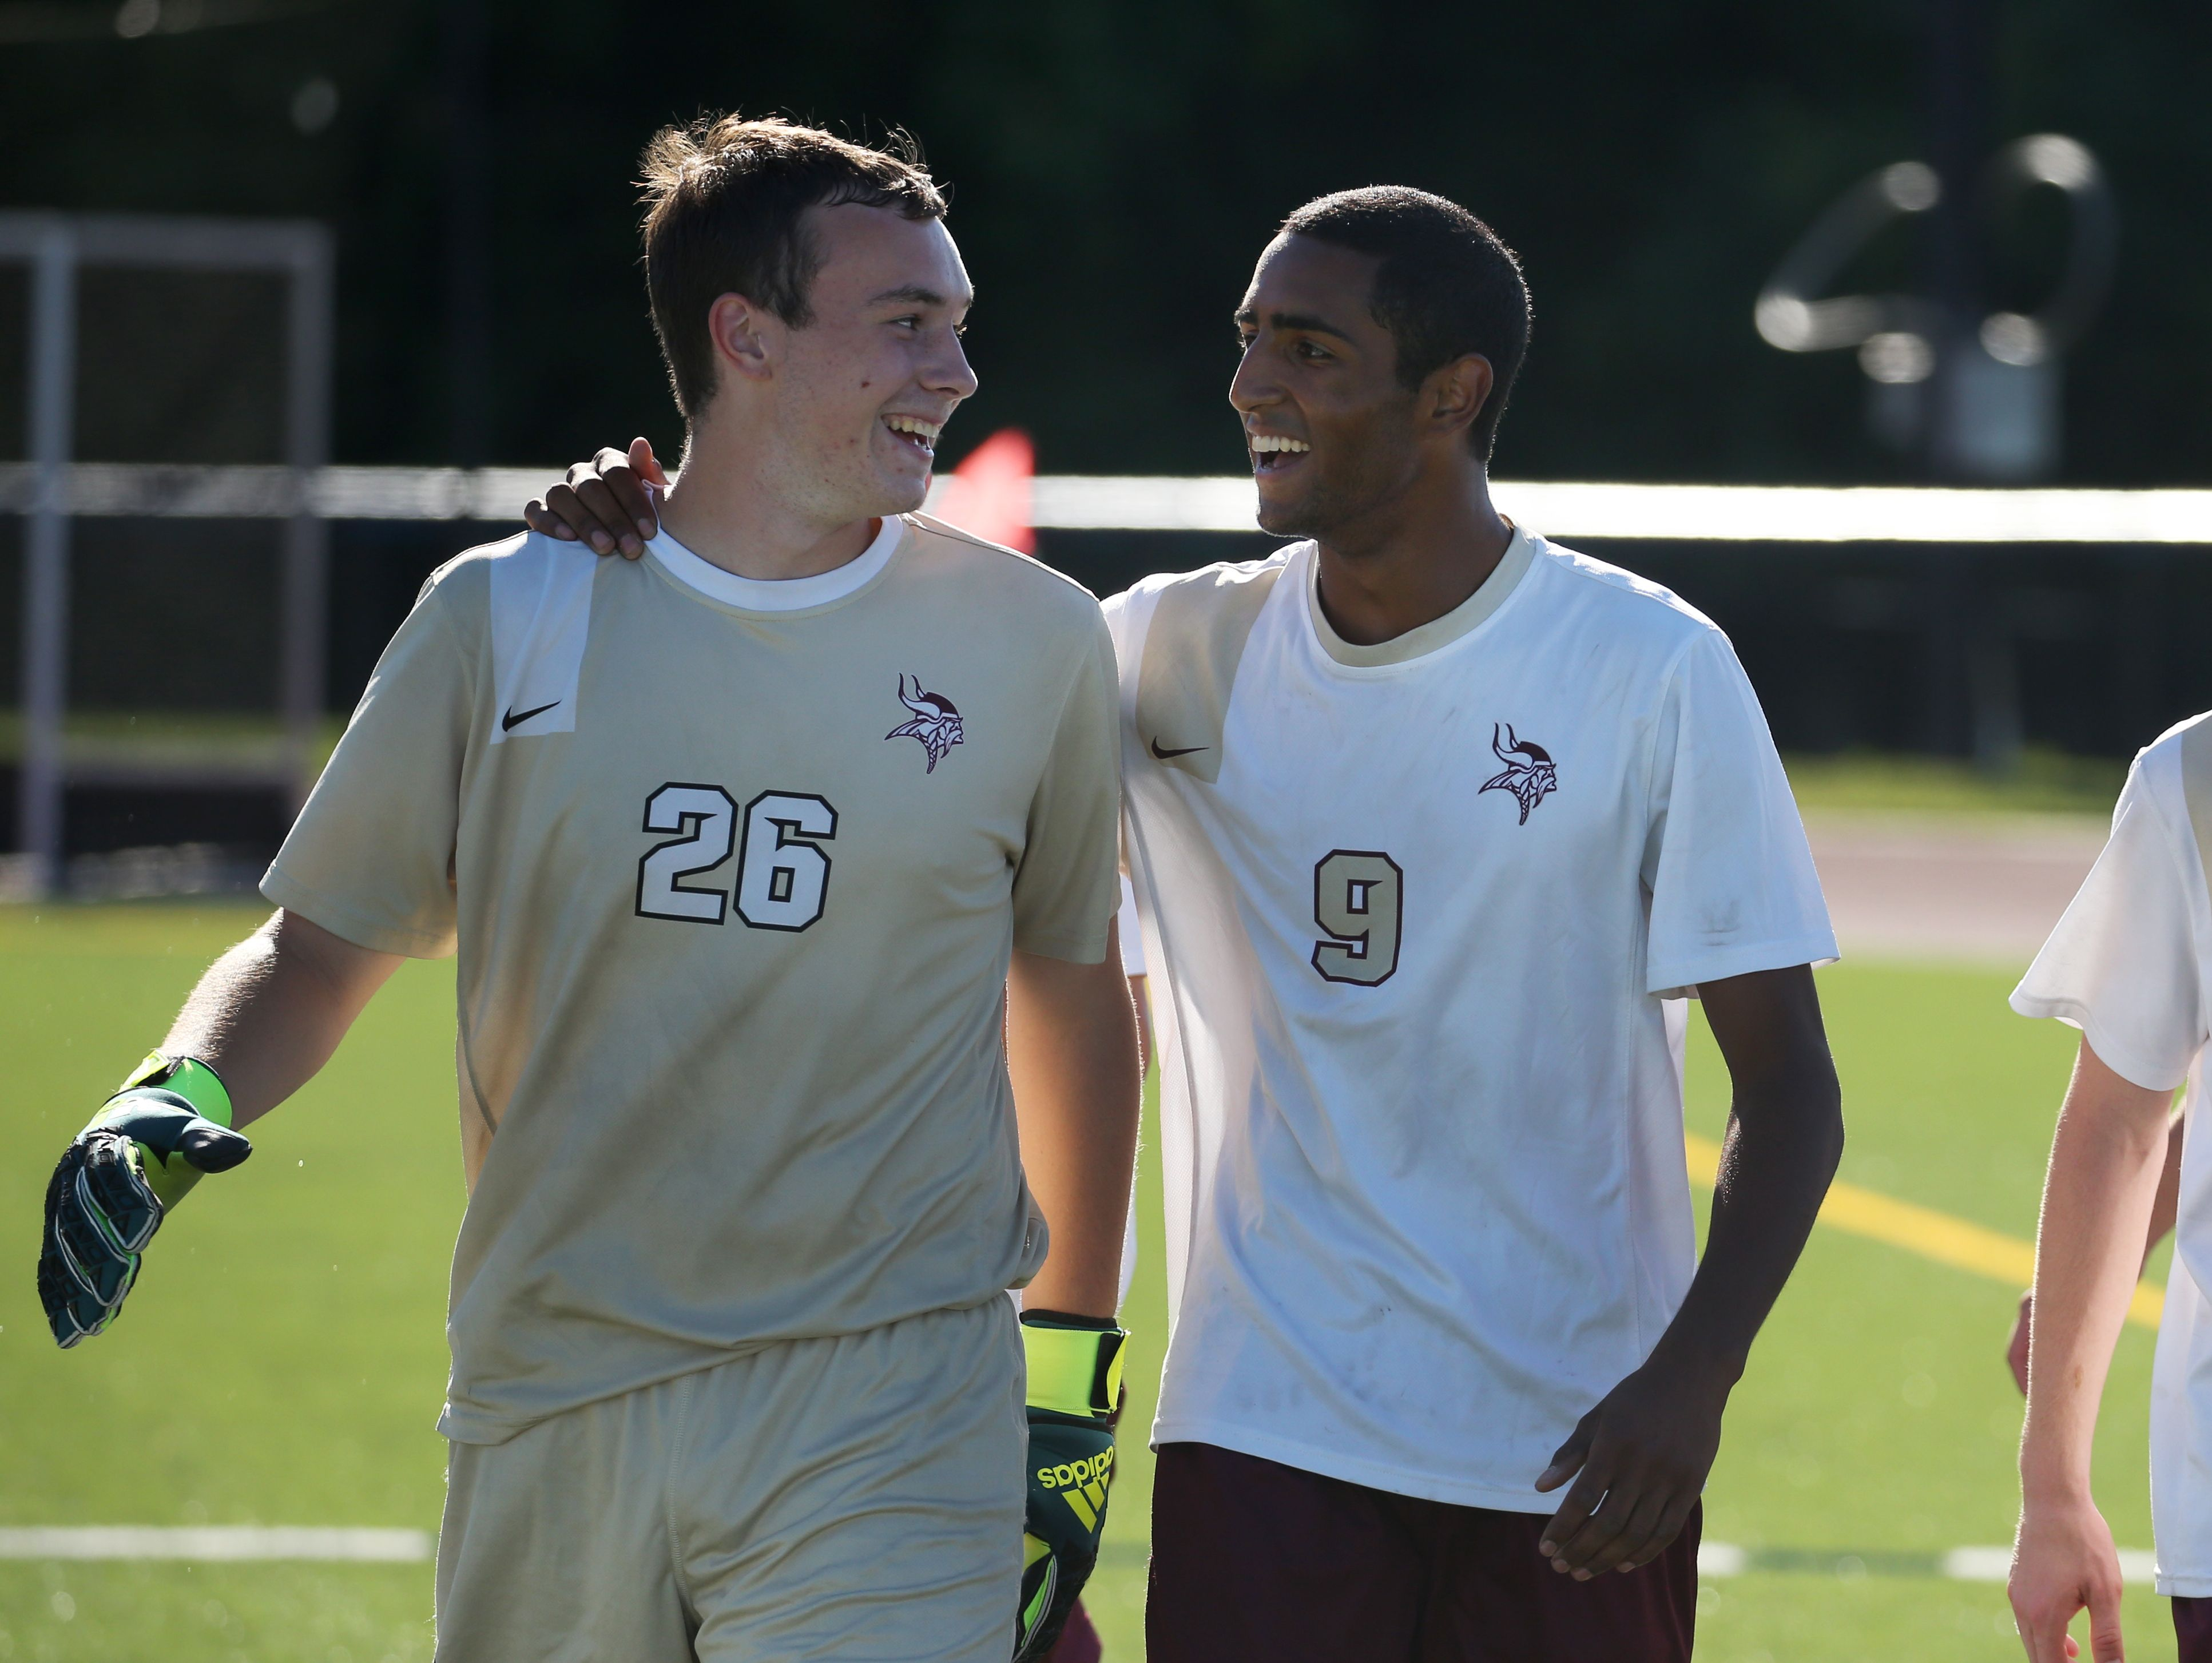 """Adrian Padilla (9) and Winston Bennett (26) of Pittsford Mendon celebrate their season-opening win against Aquinas. His team's vote for him to wear No. 9 """"means these people that I grew up with trust me to lead them,"""" Padilla says."""